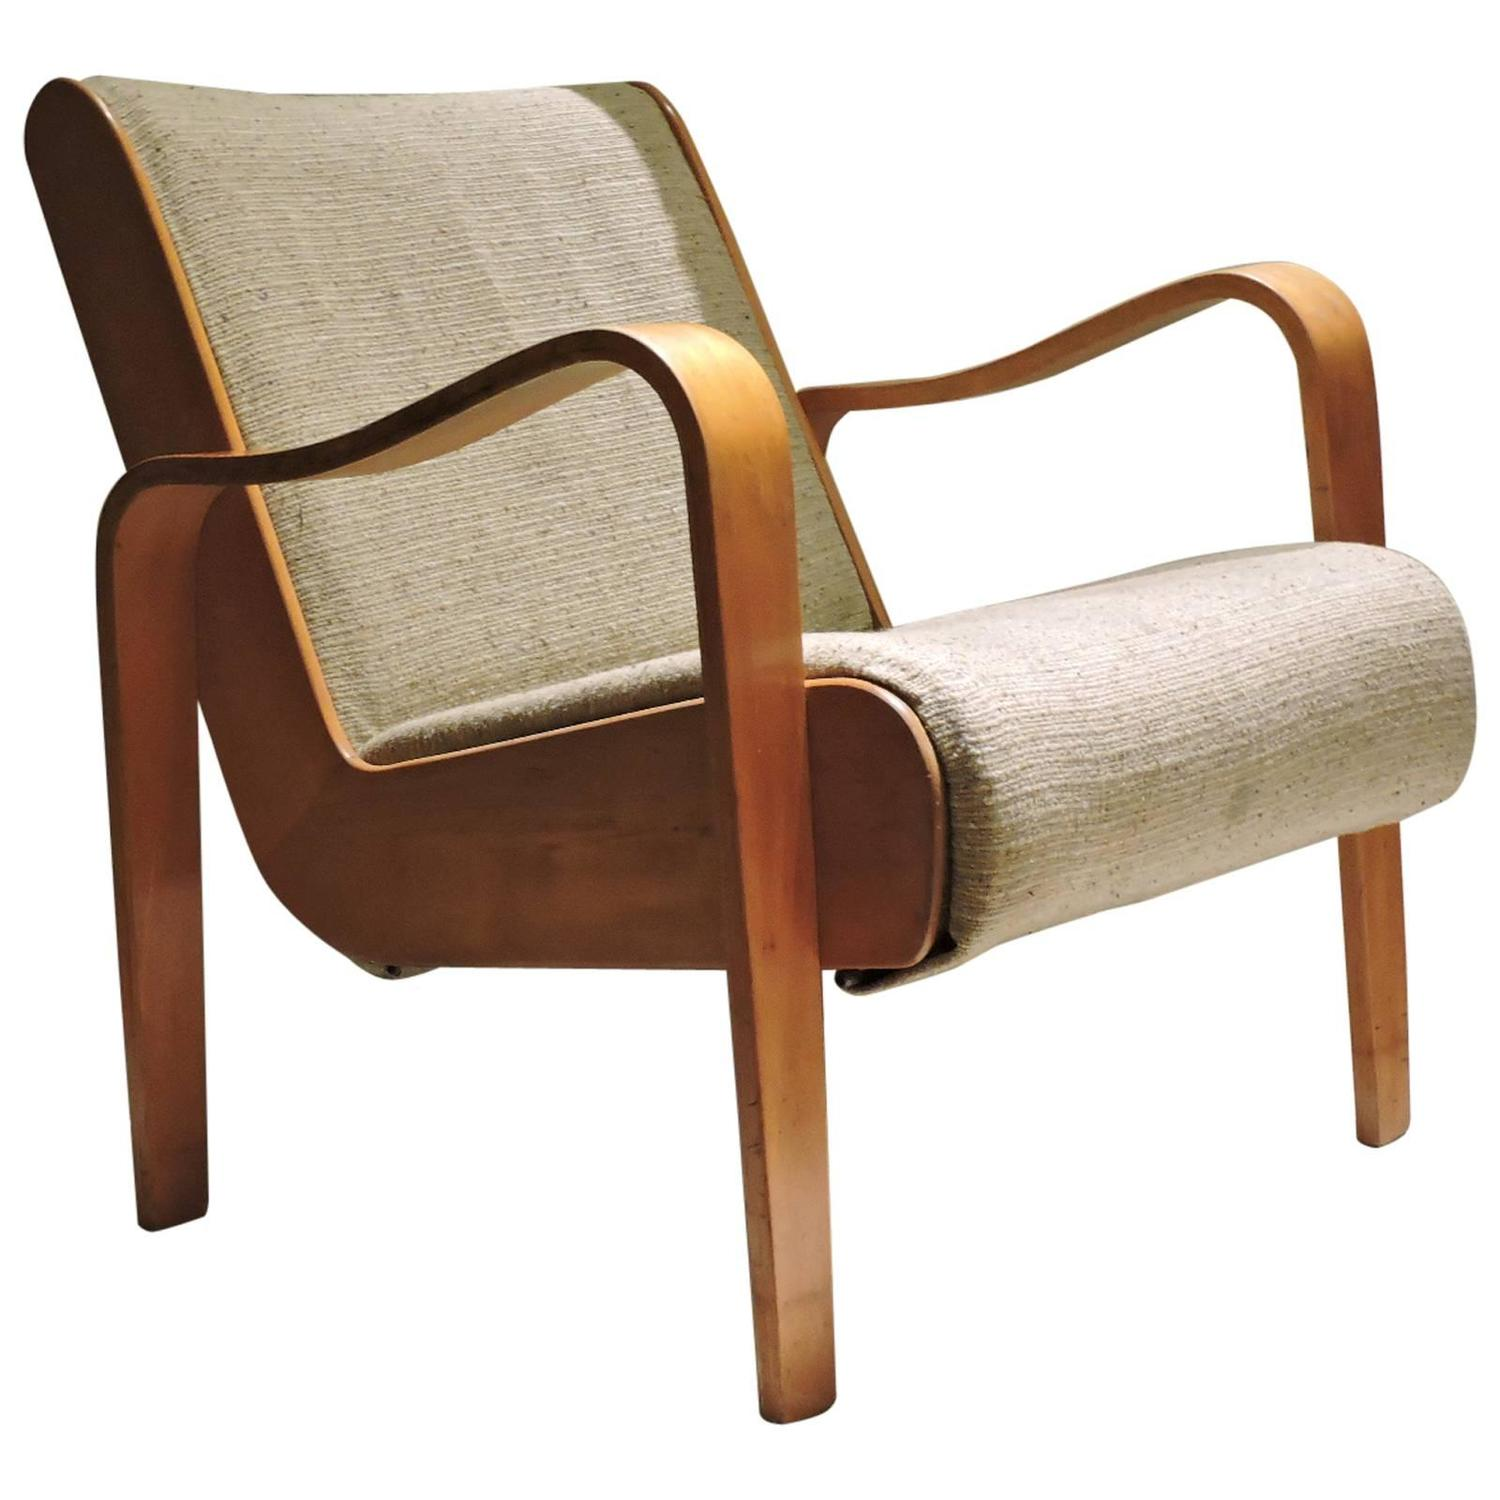 Unusual thonet bentwood lounge chair at 1stdibs for Unusual chairs